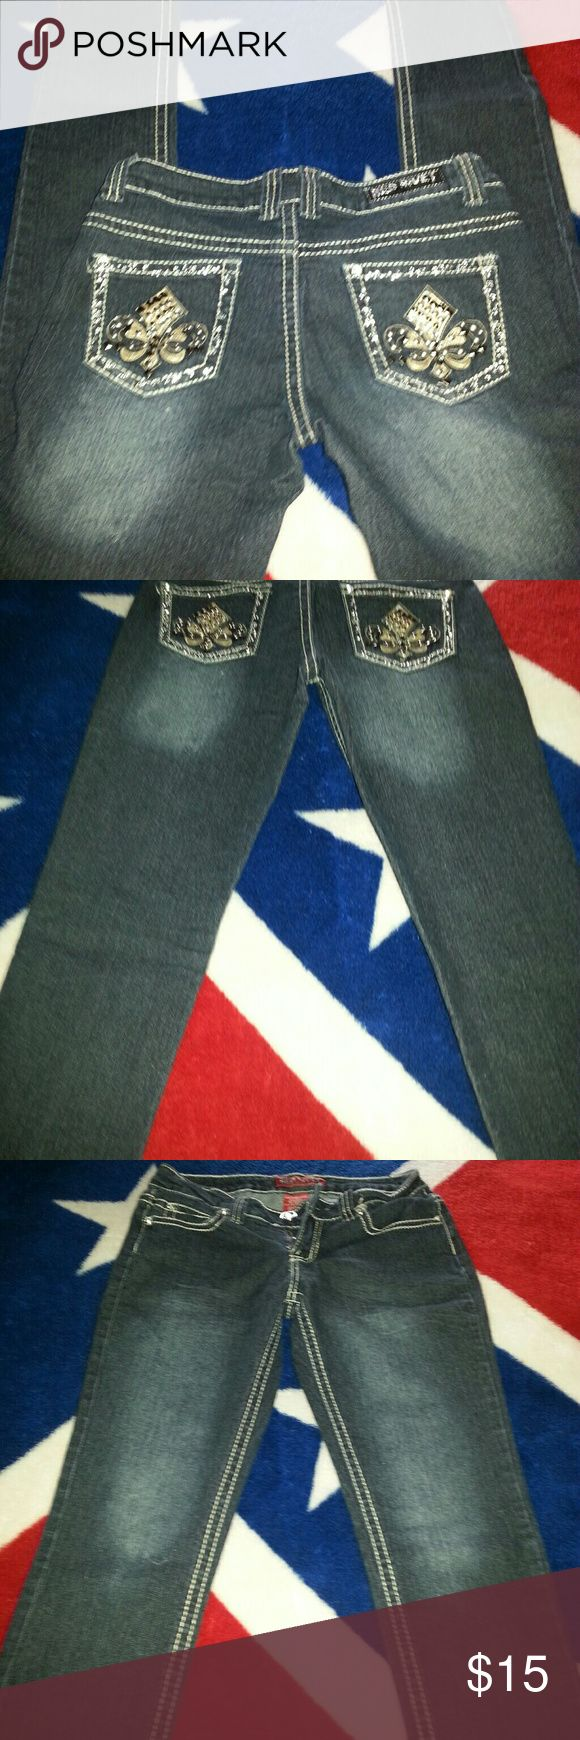 Red Rivet Jeans Very petite skinny jeans but really cute for that skinny lady size 5 actually as seen in tag Red Rivet Jeans Skinny